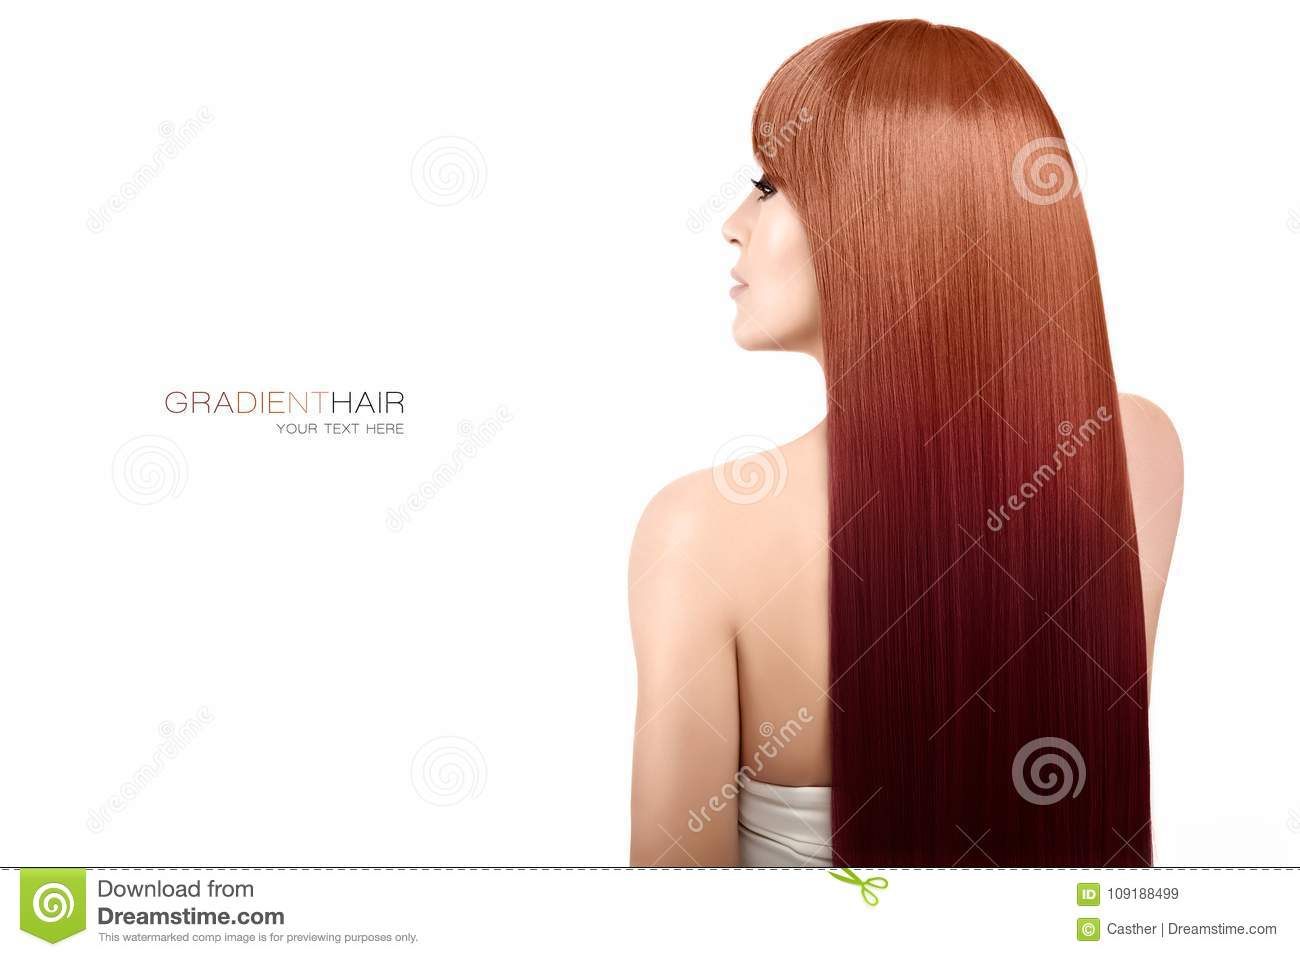 Beauty Model With Gorgeous Long Gradient Hair. Hair Coloring ...